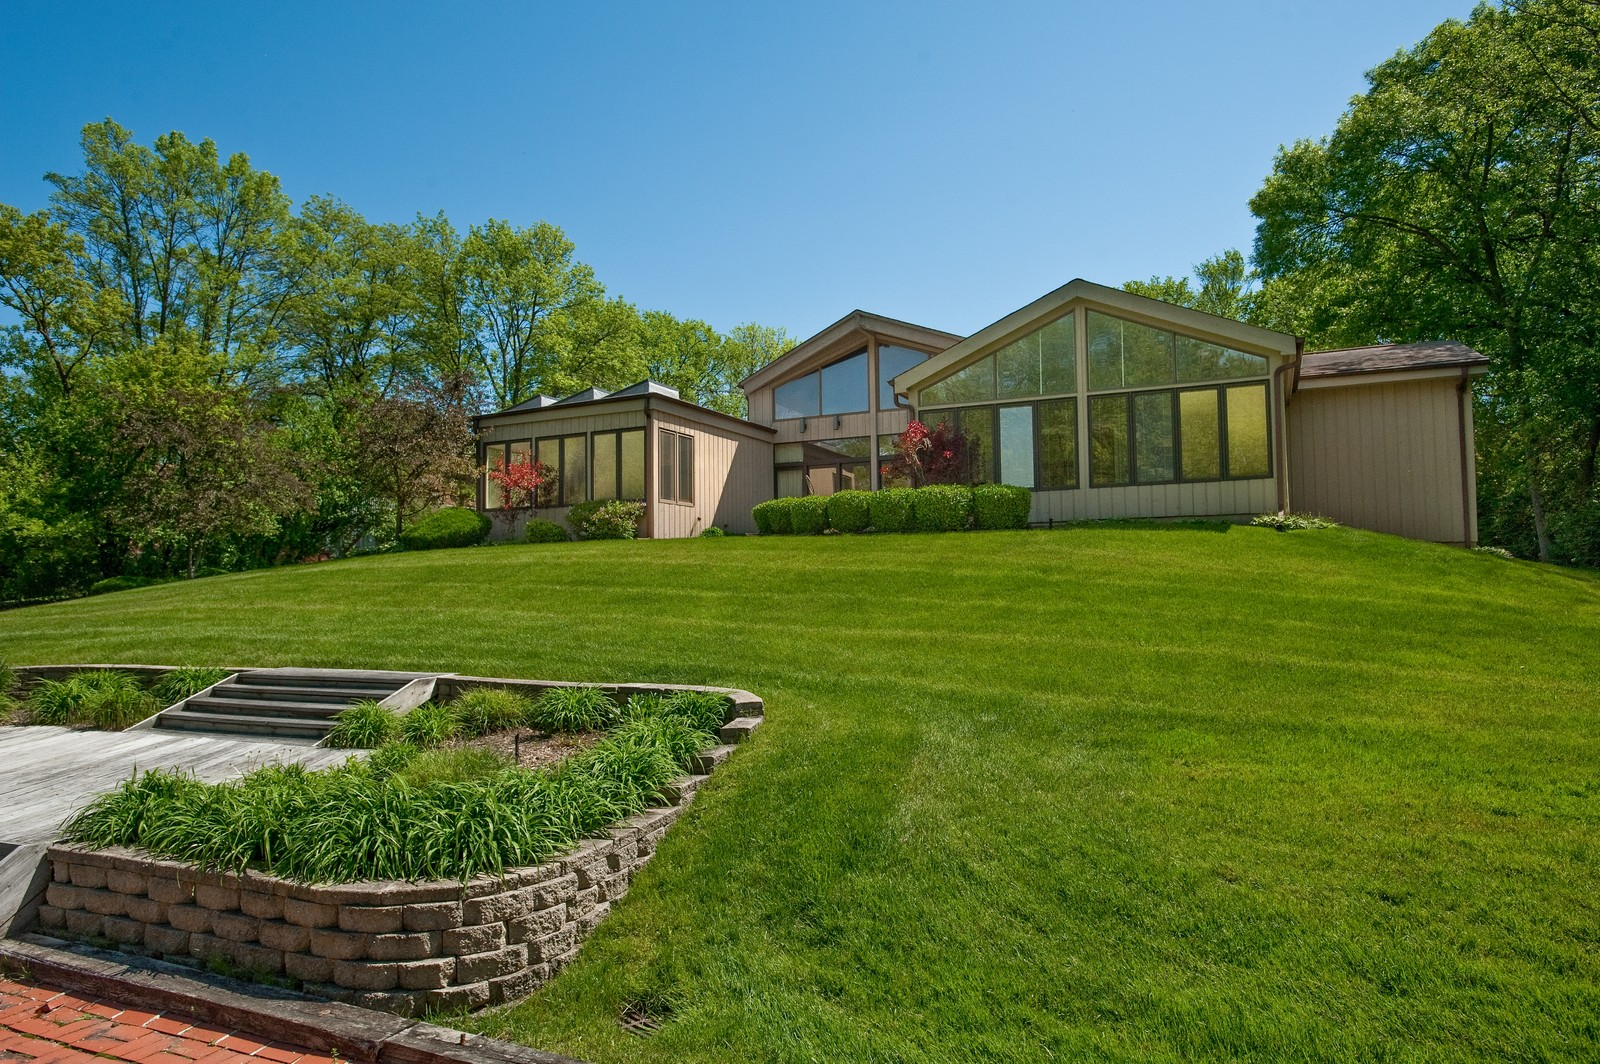 Real Estate Photography - 804 Happ Rd, Northfield, IL, 60093 - Rear View